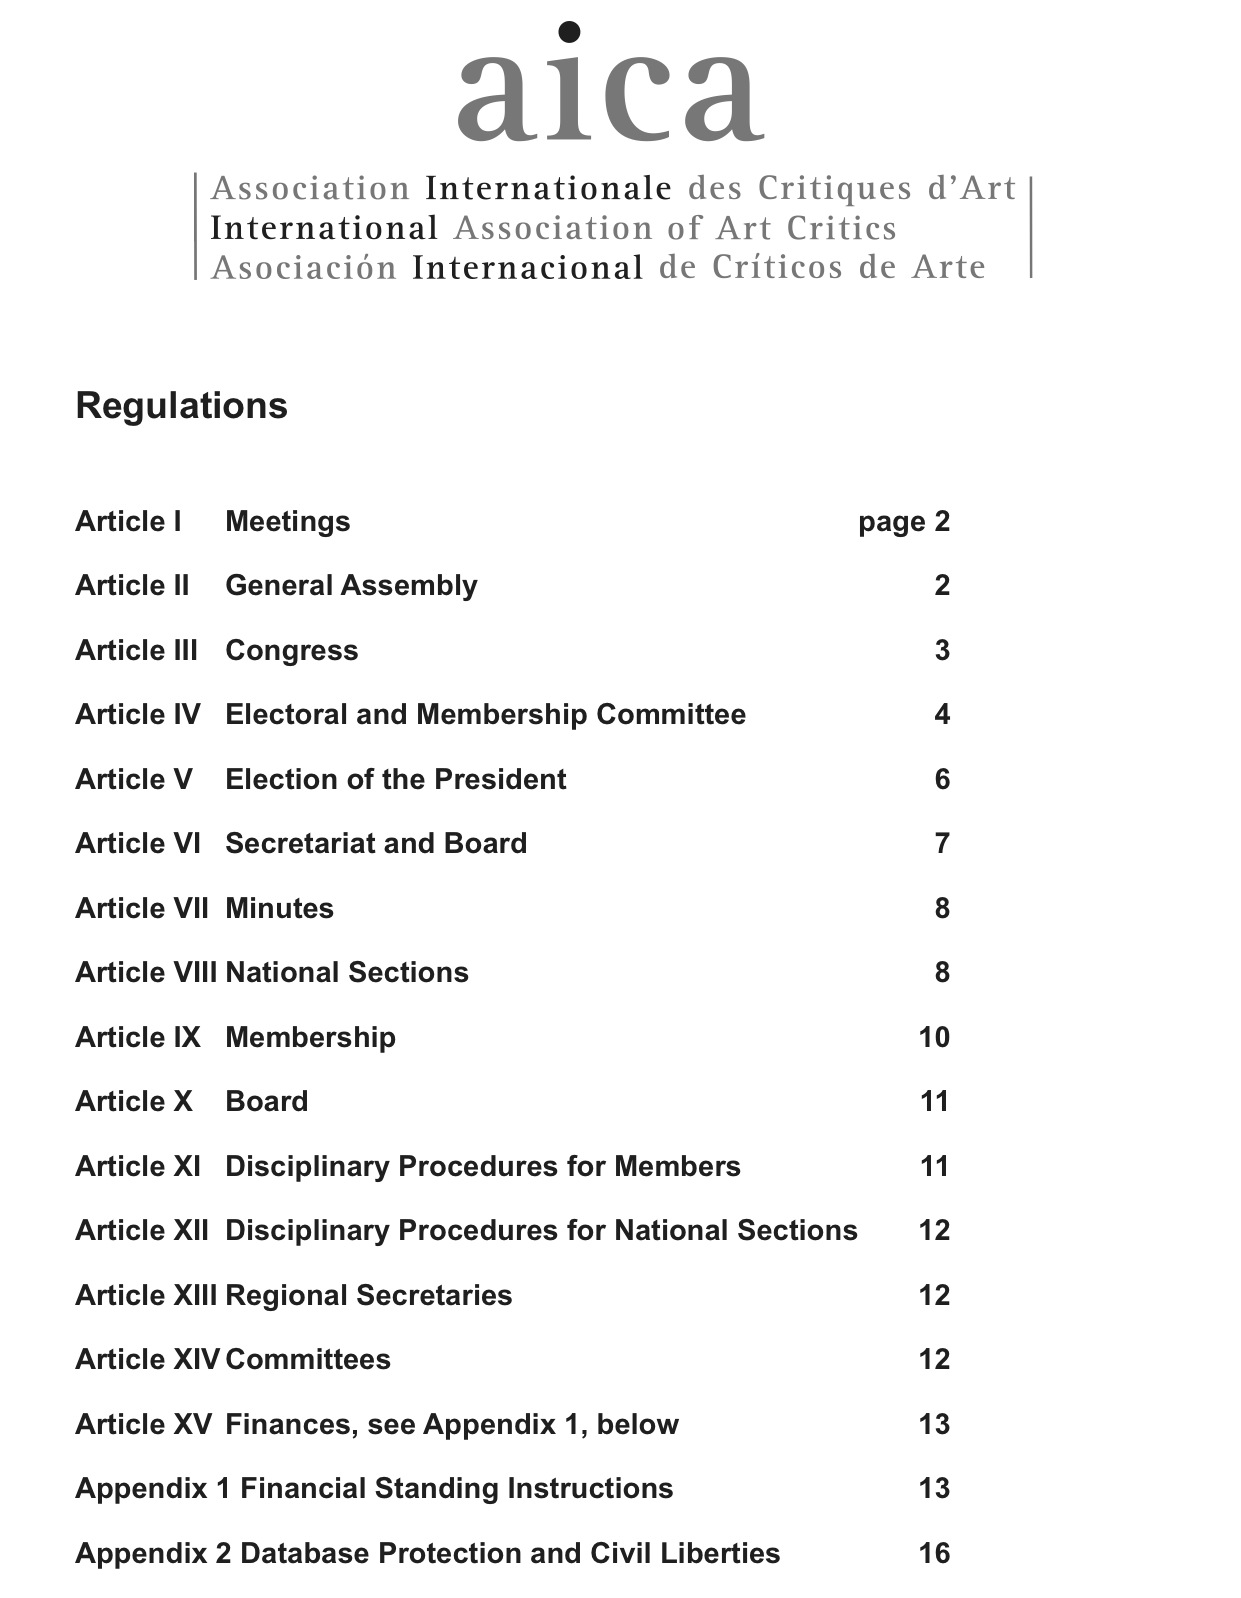 aica-regulations-cover.jpg